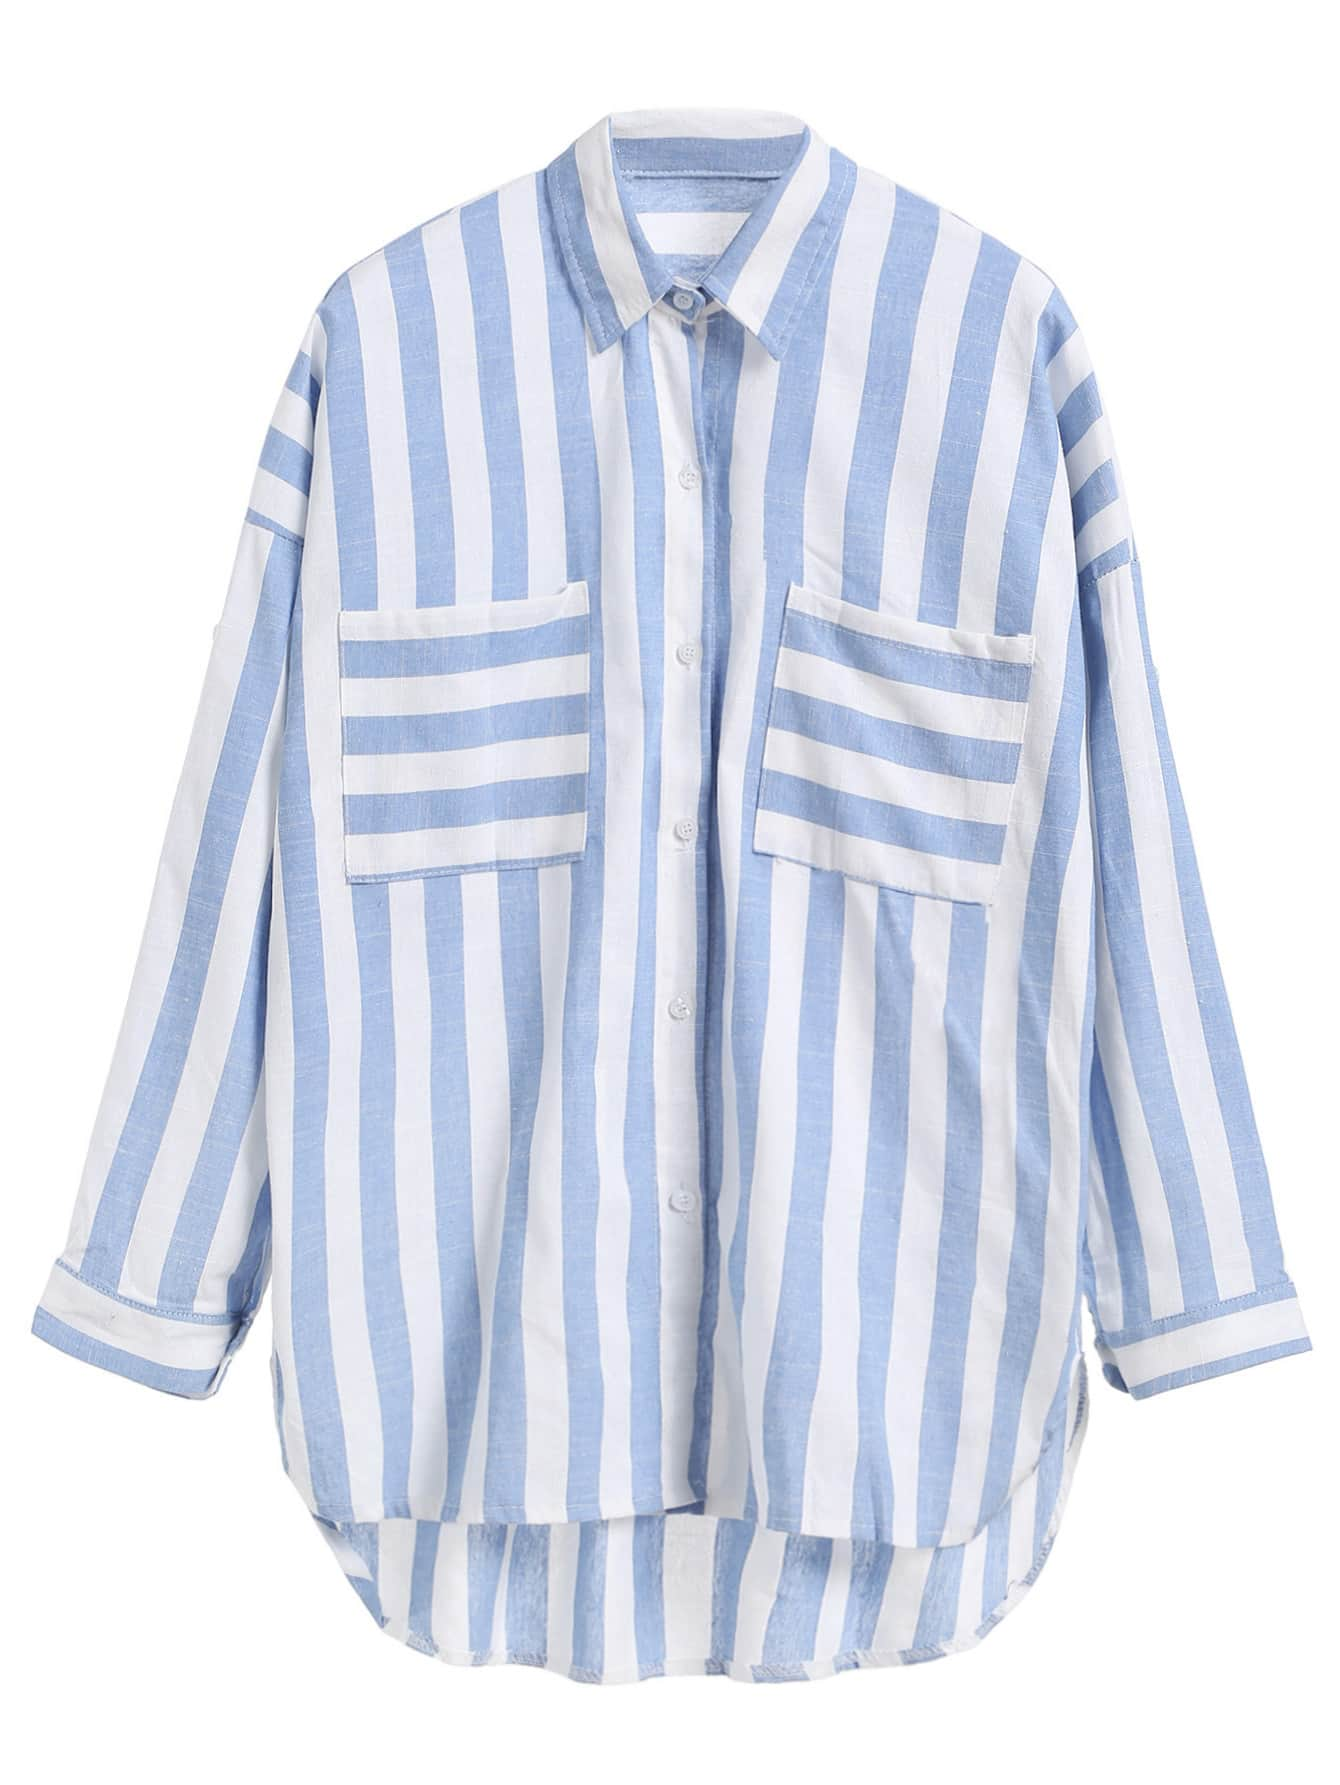 Blue Striped Dip Hem Shirt With Pockets blouse160831126